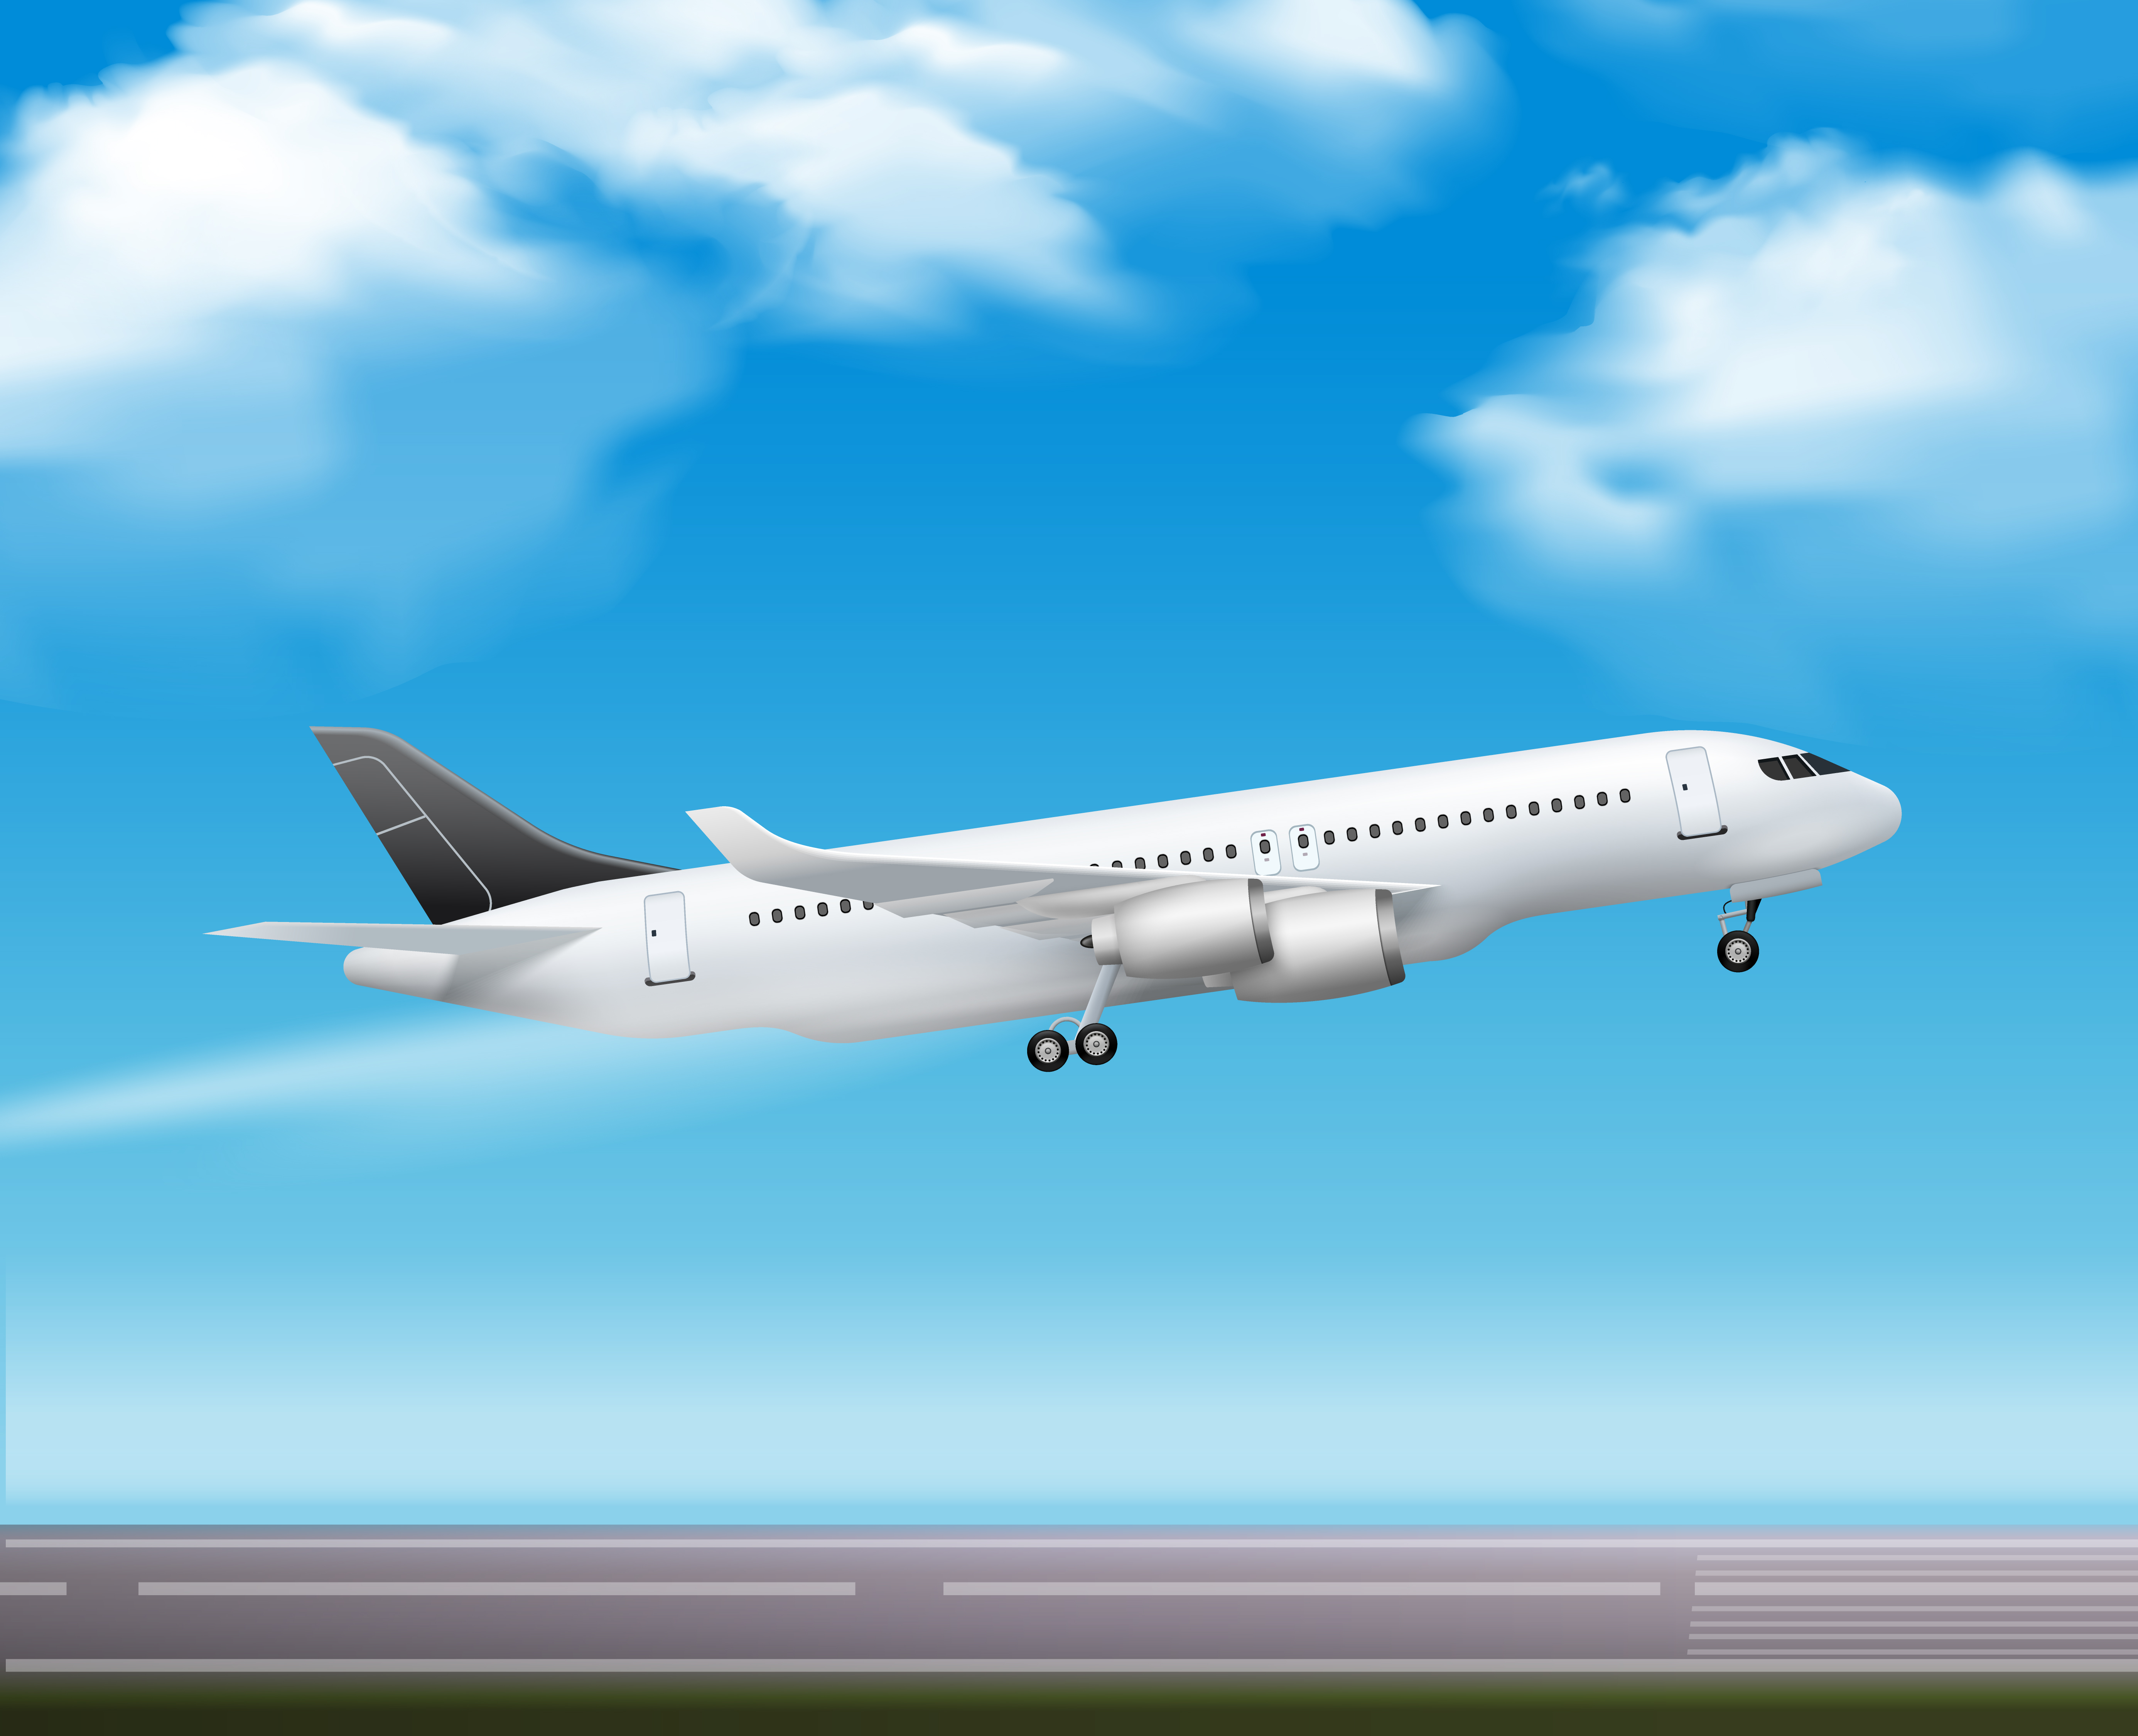 Passenger airliner takeoff poster. Jet clipart realistic